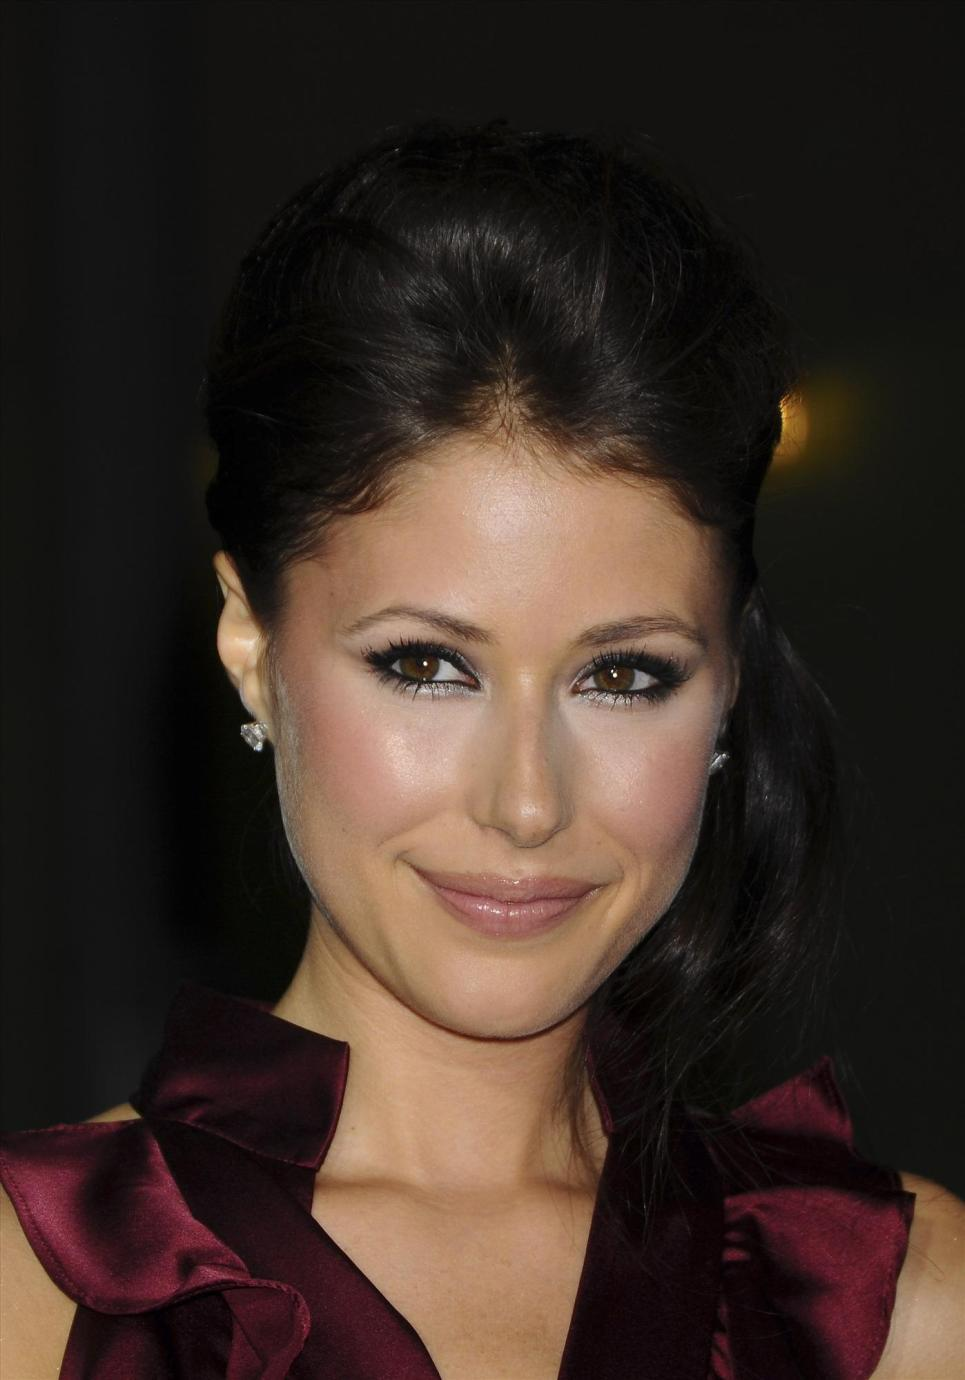 Cute Wallpapers Images Love Amanda Crew Xcitefun Net